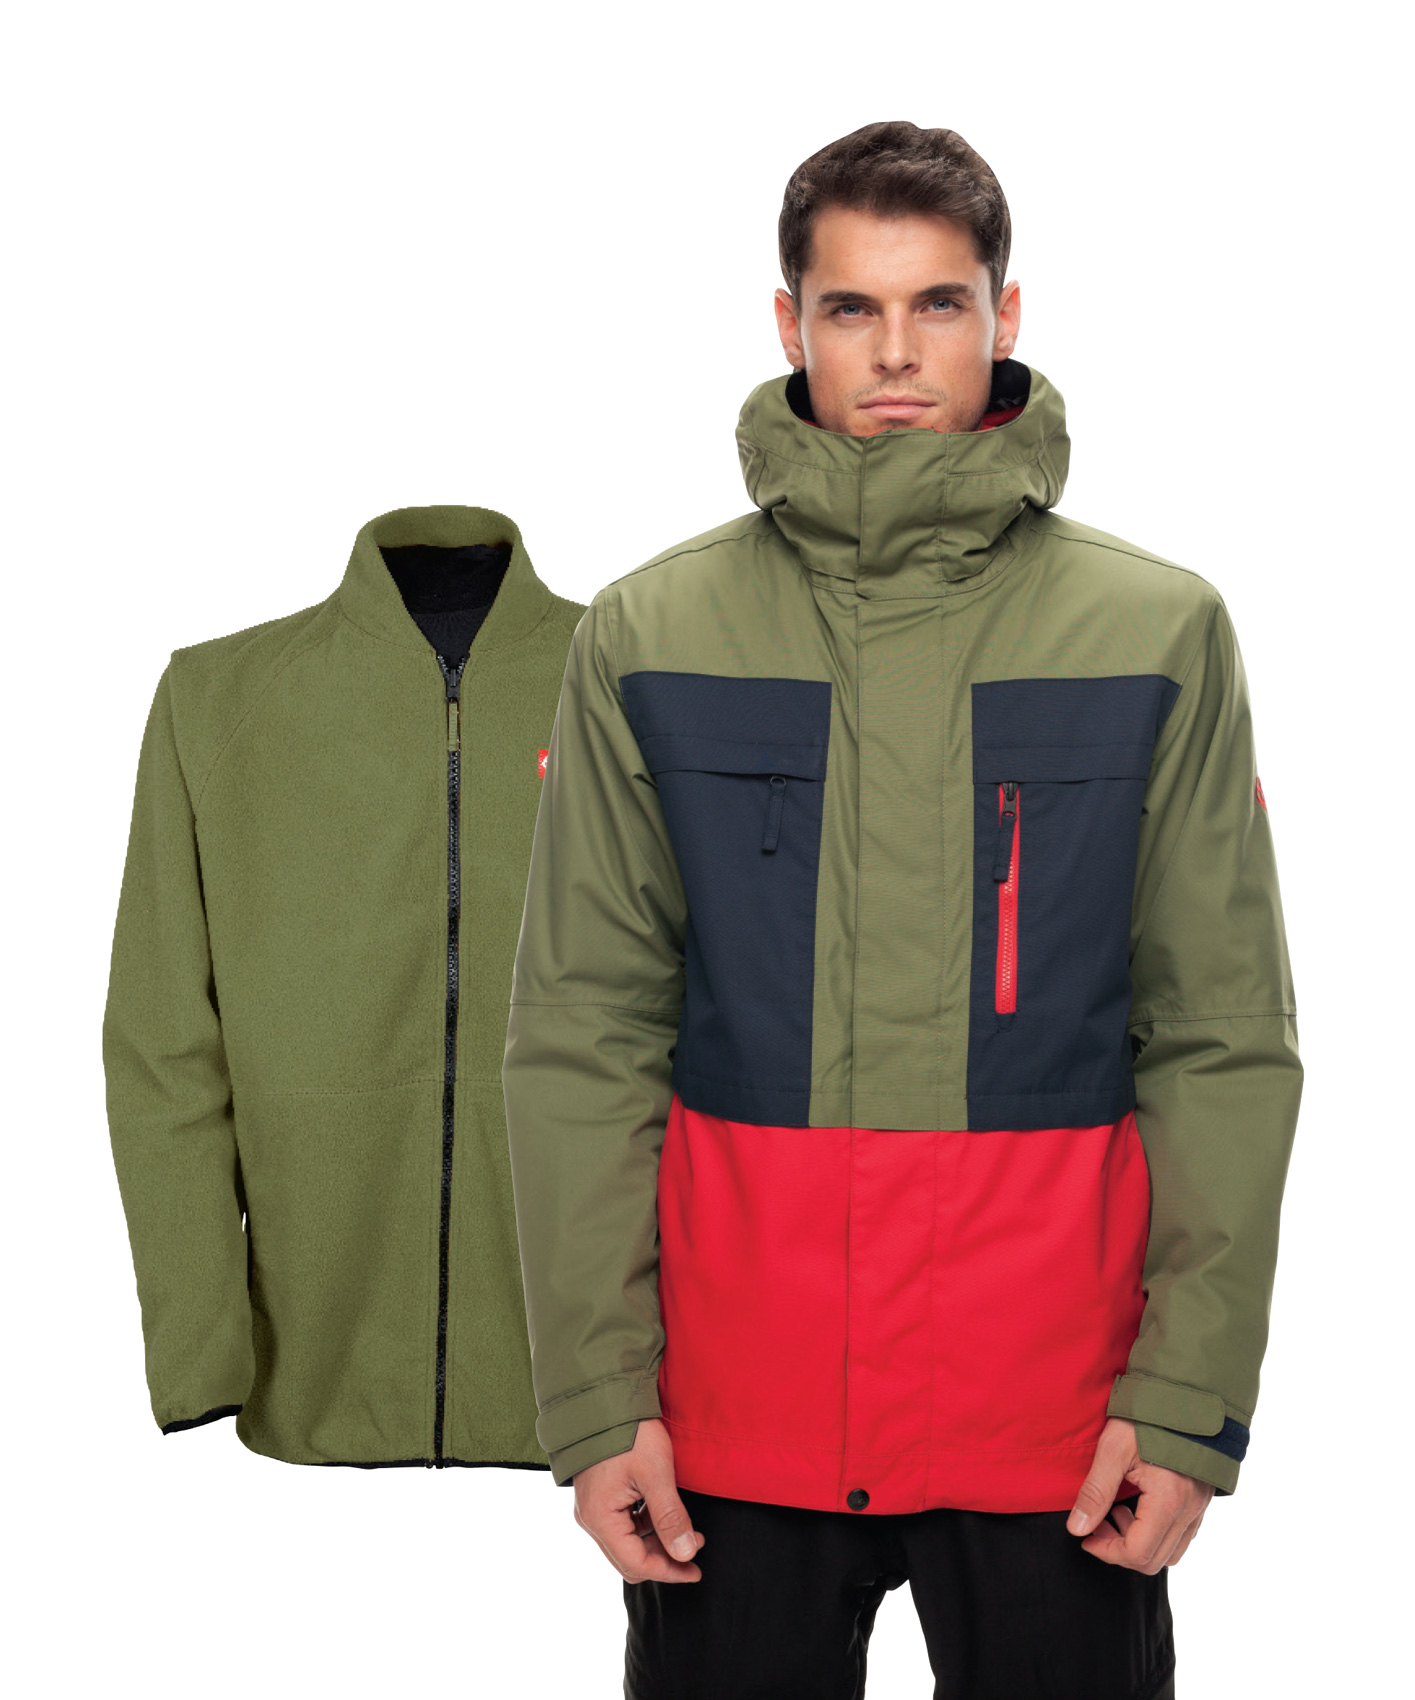 686 Smarty Form Snowboard Jacket 2018